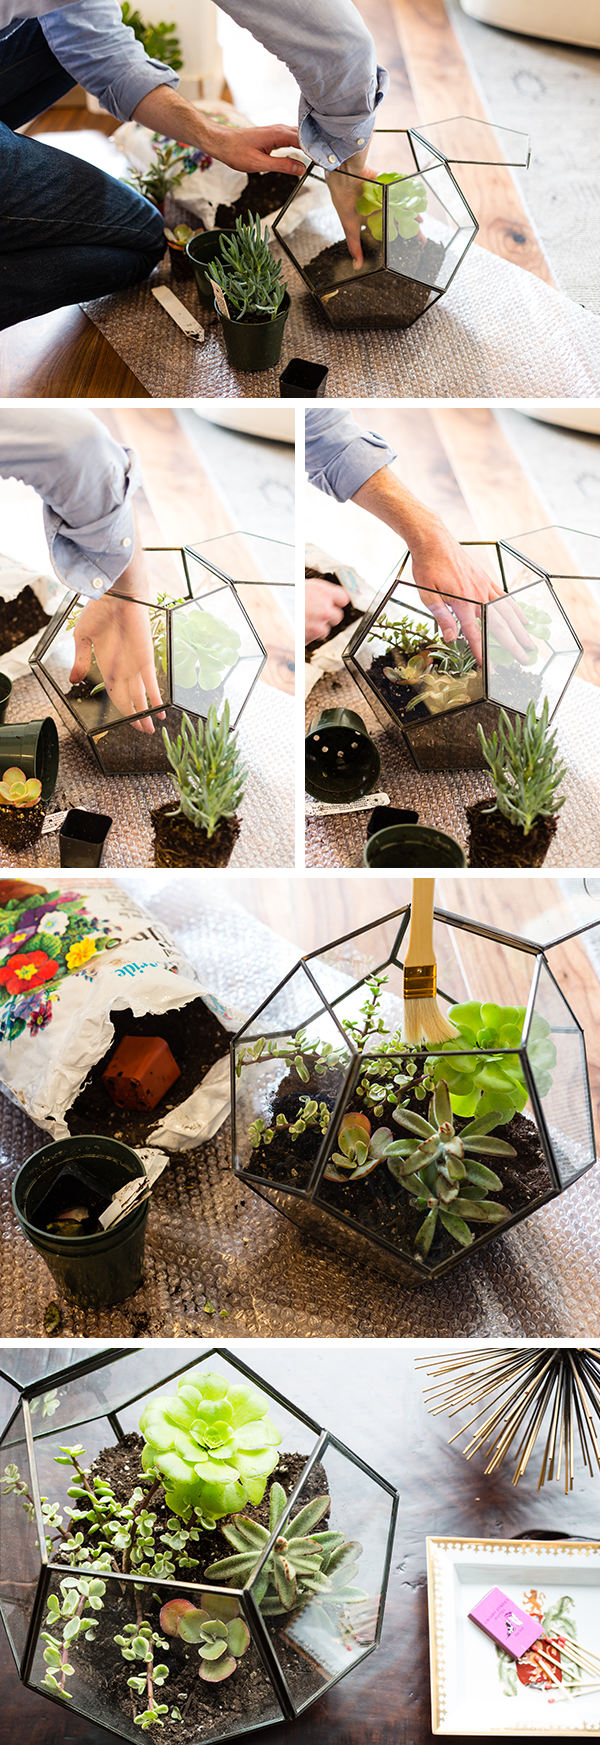 Coffee Table Kits Try A Zinc And Glass Terrarium For A Succulent Display On Your